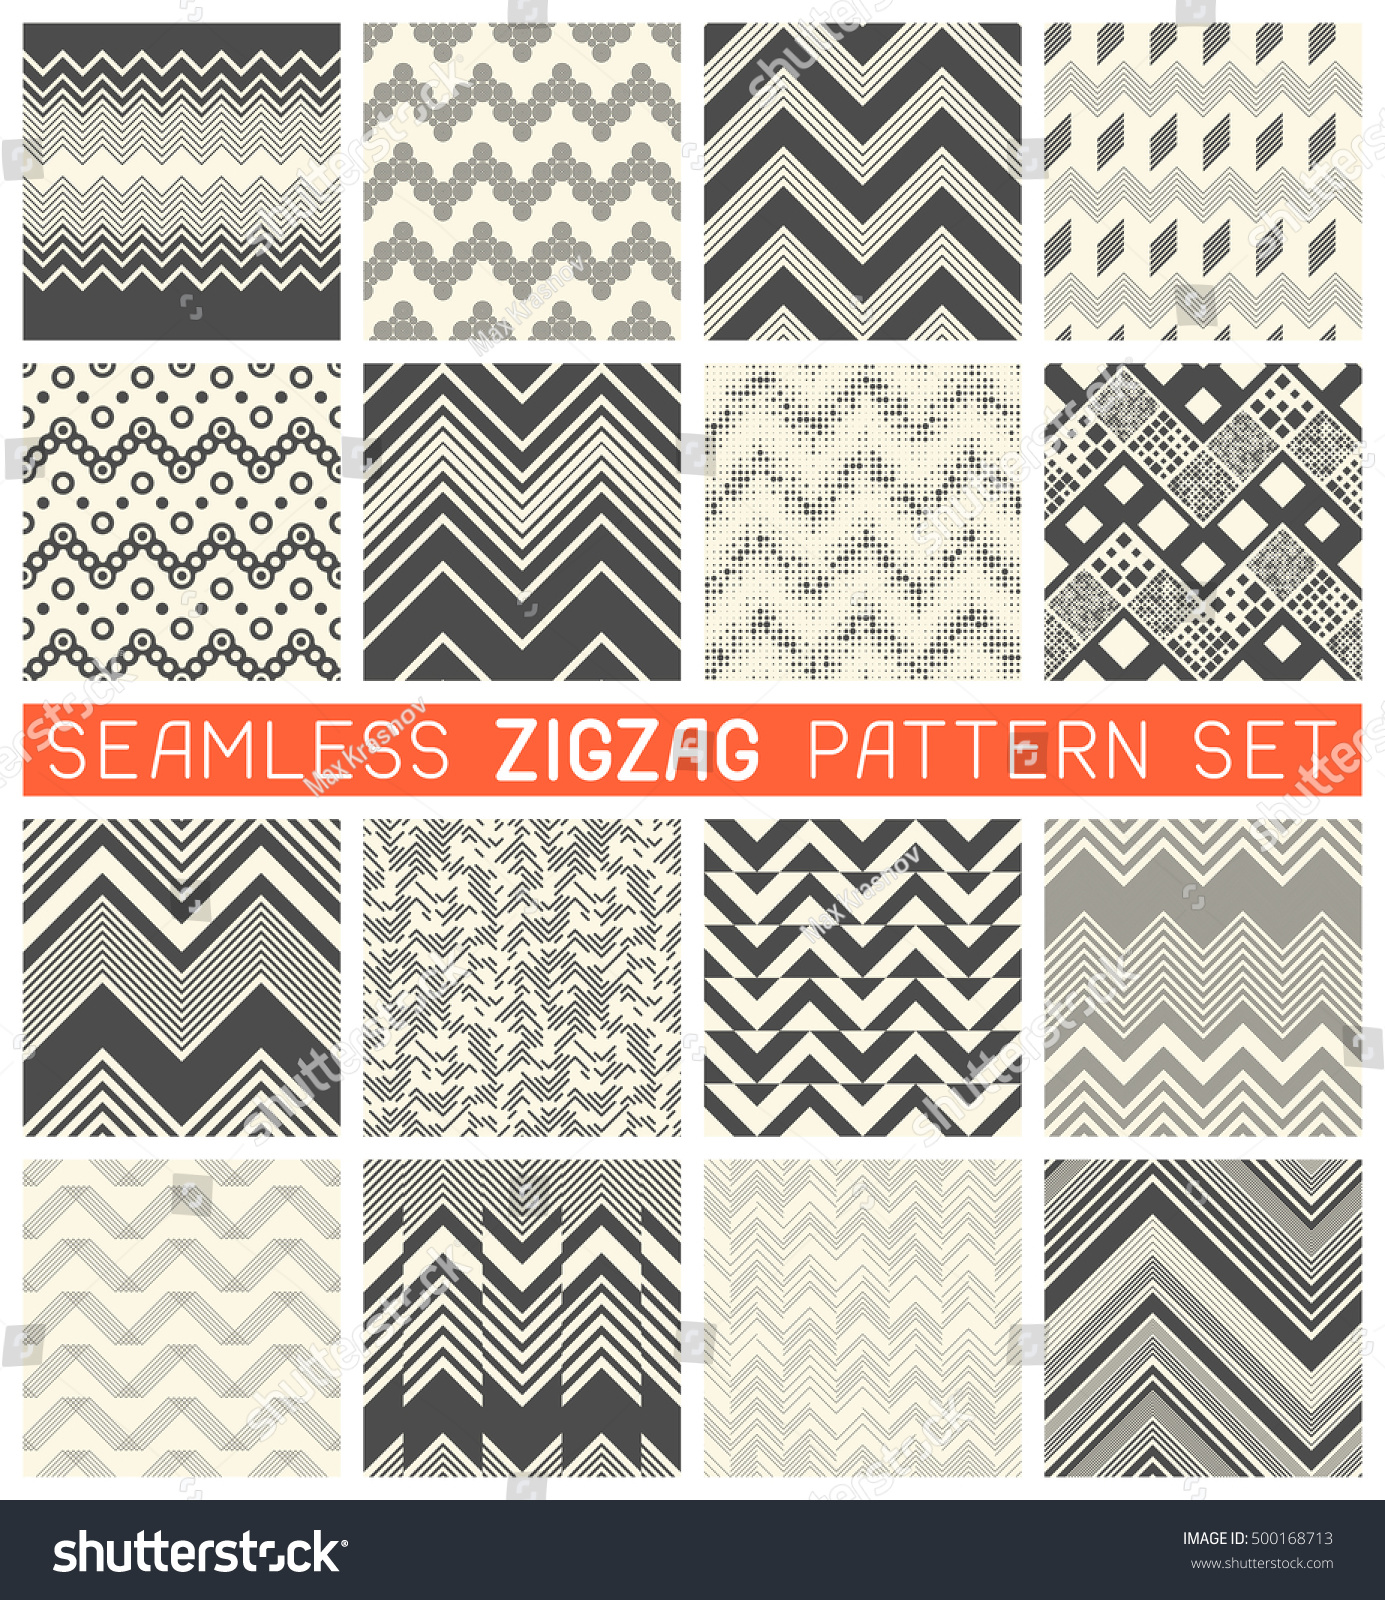 seamless zig zag pattern set chevron stock vector 500168713 shutterstock. Black Bedroom Furniture Sets. Home Design Ideas